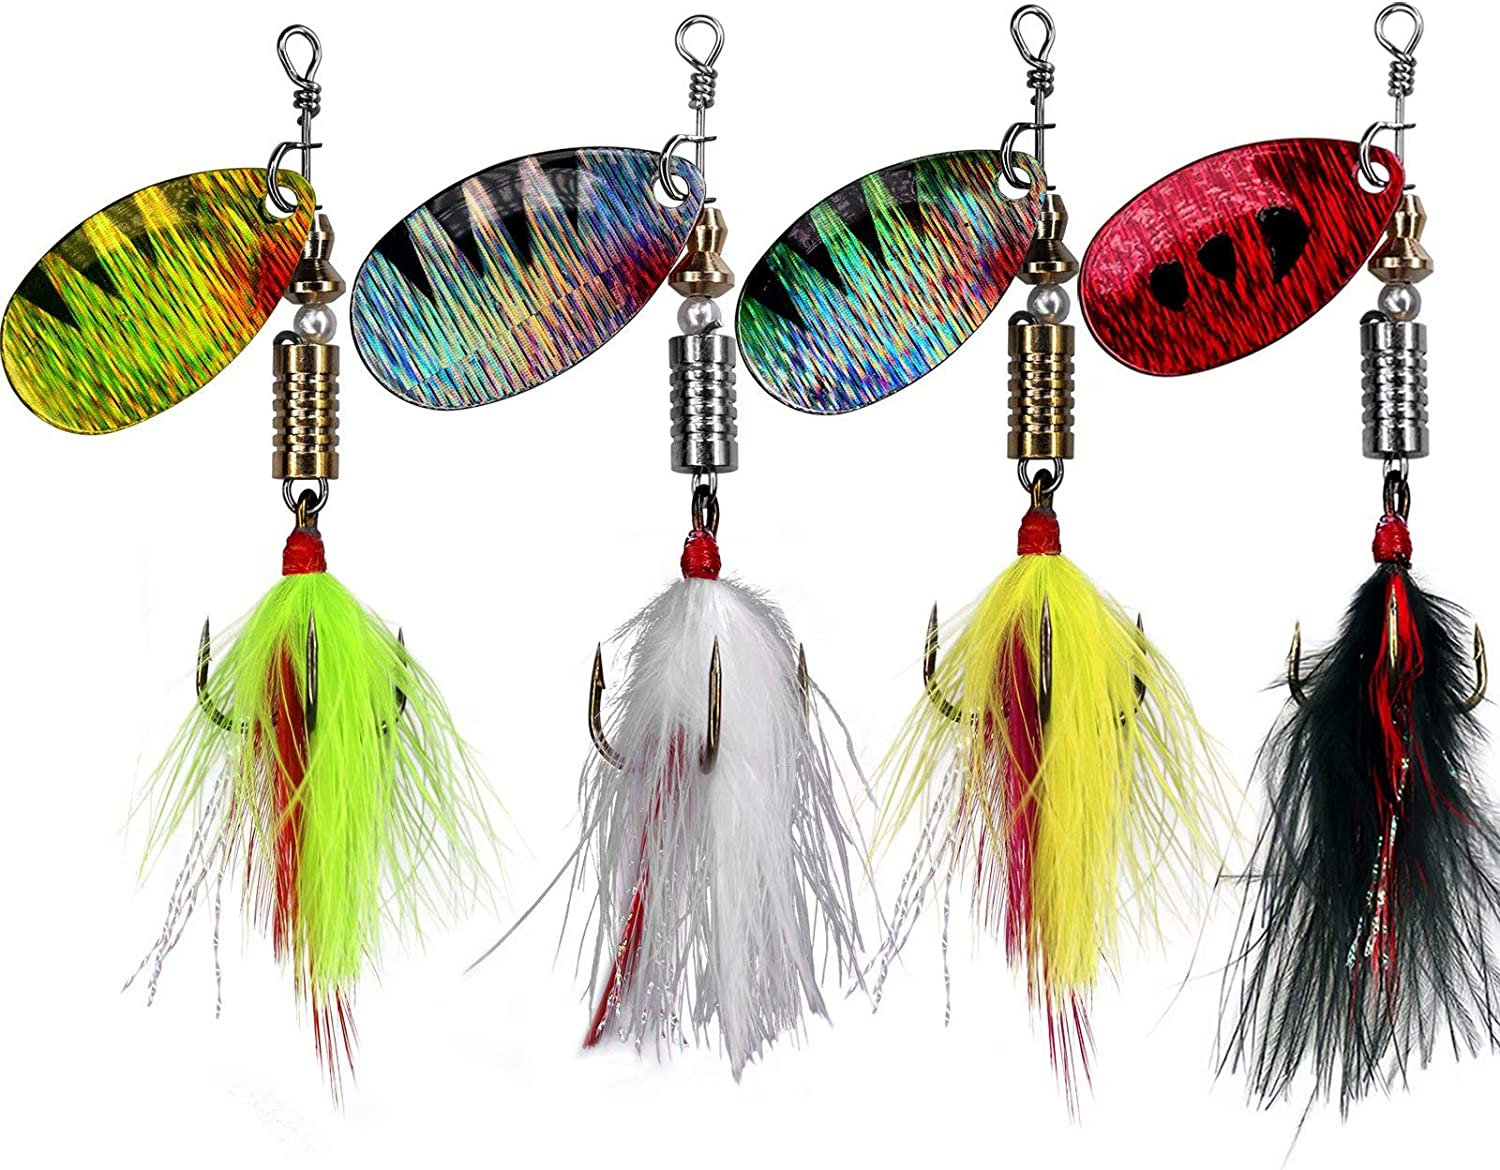 THKFISH Spinner Baits Fishing Spinners Spinnerbait Max 74% OFF Over item handling Lures F Trout